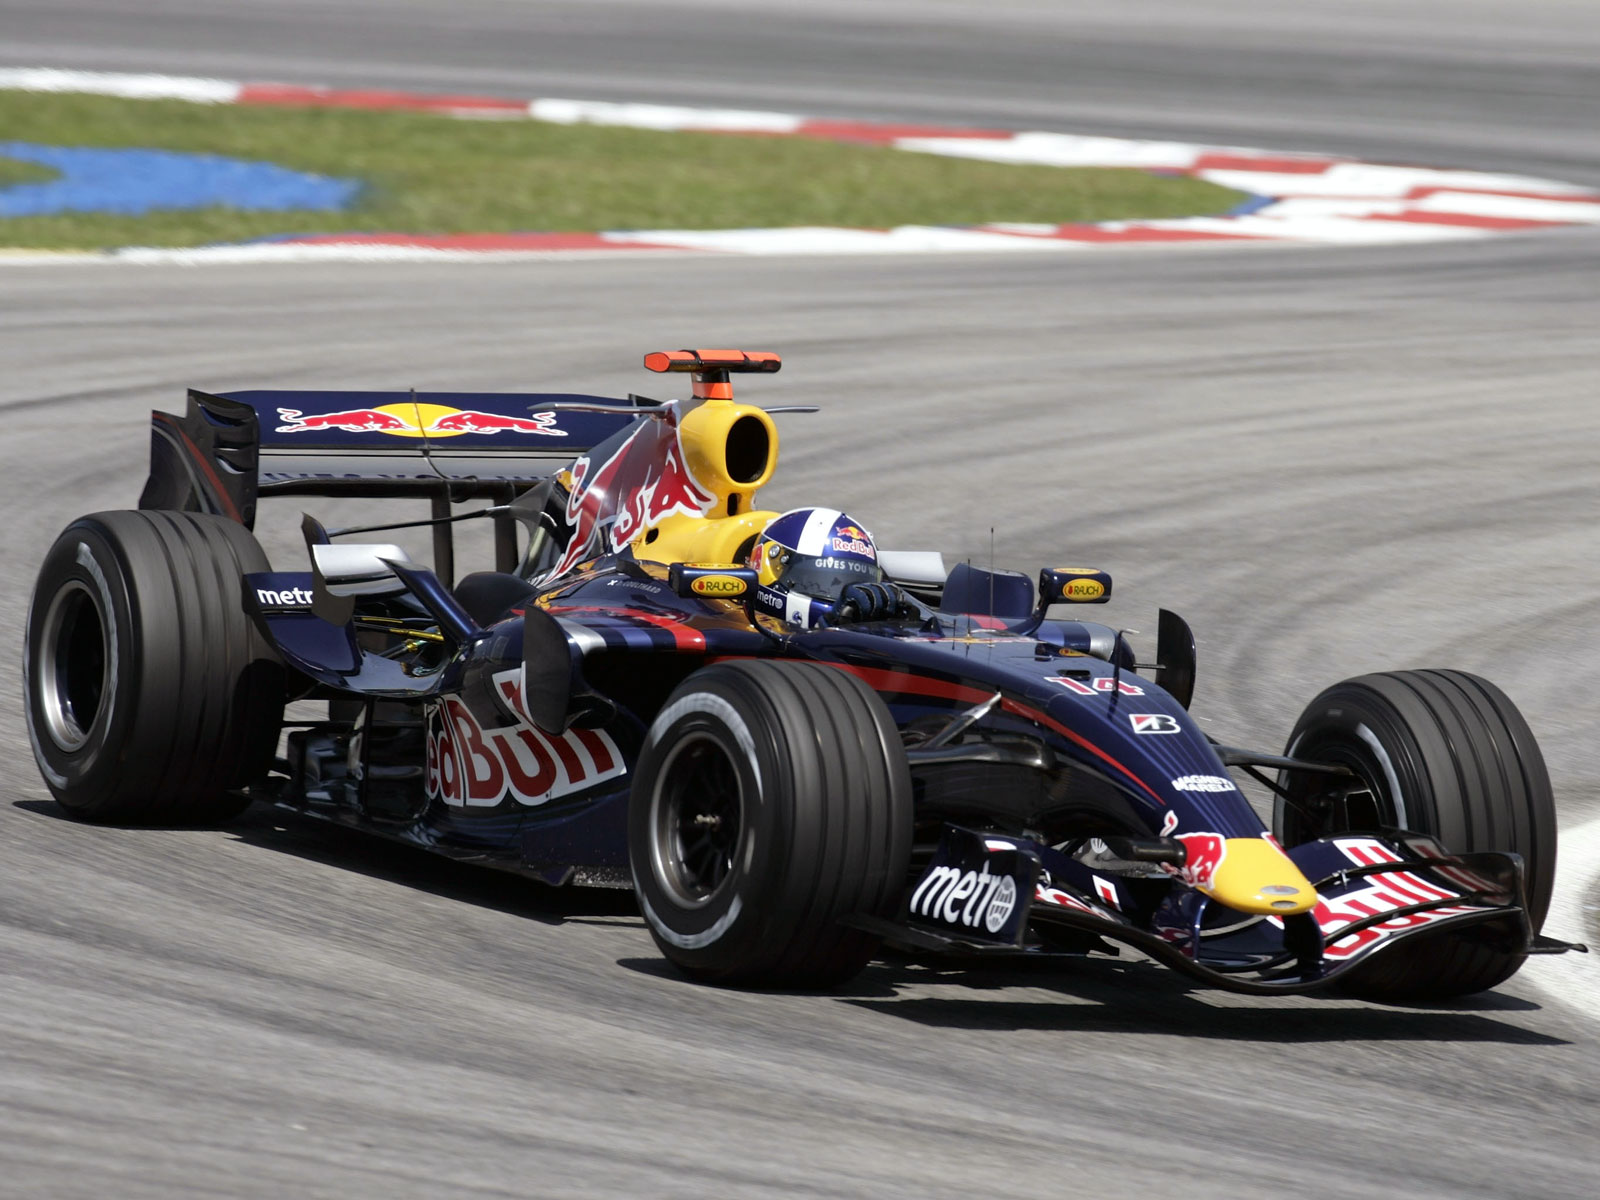 Red bull rb3 photo - 9